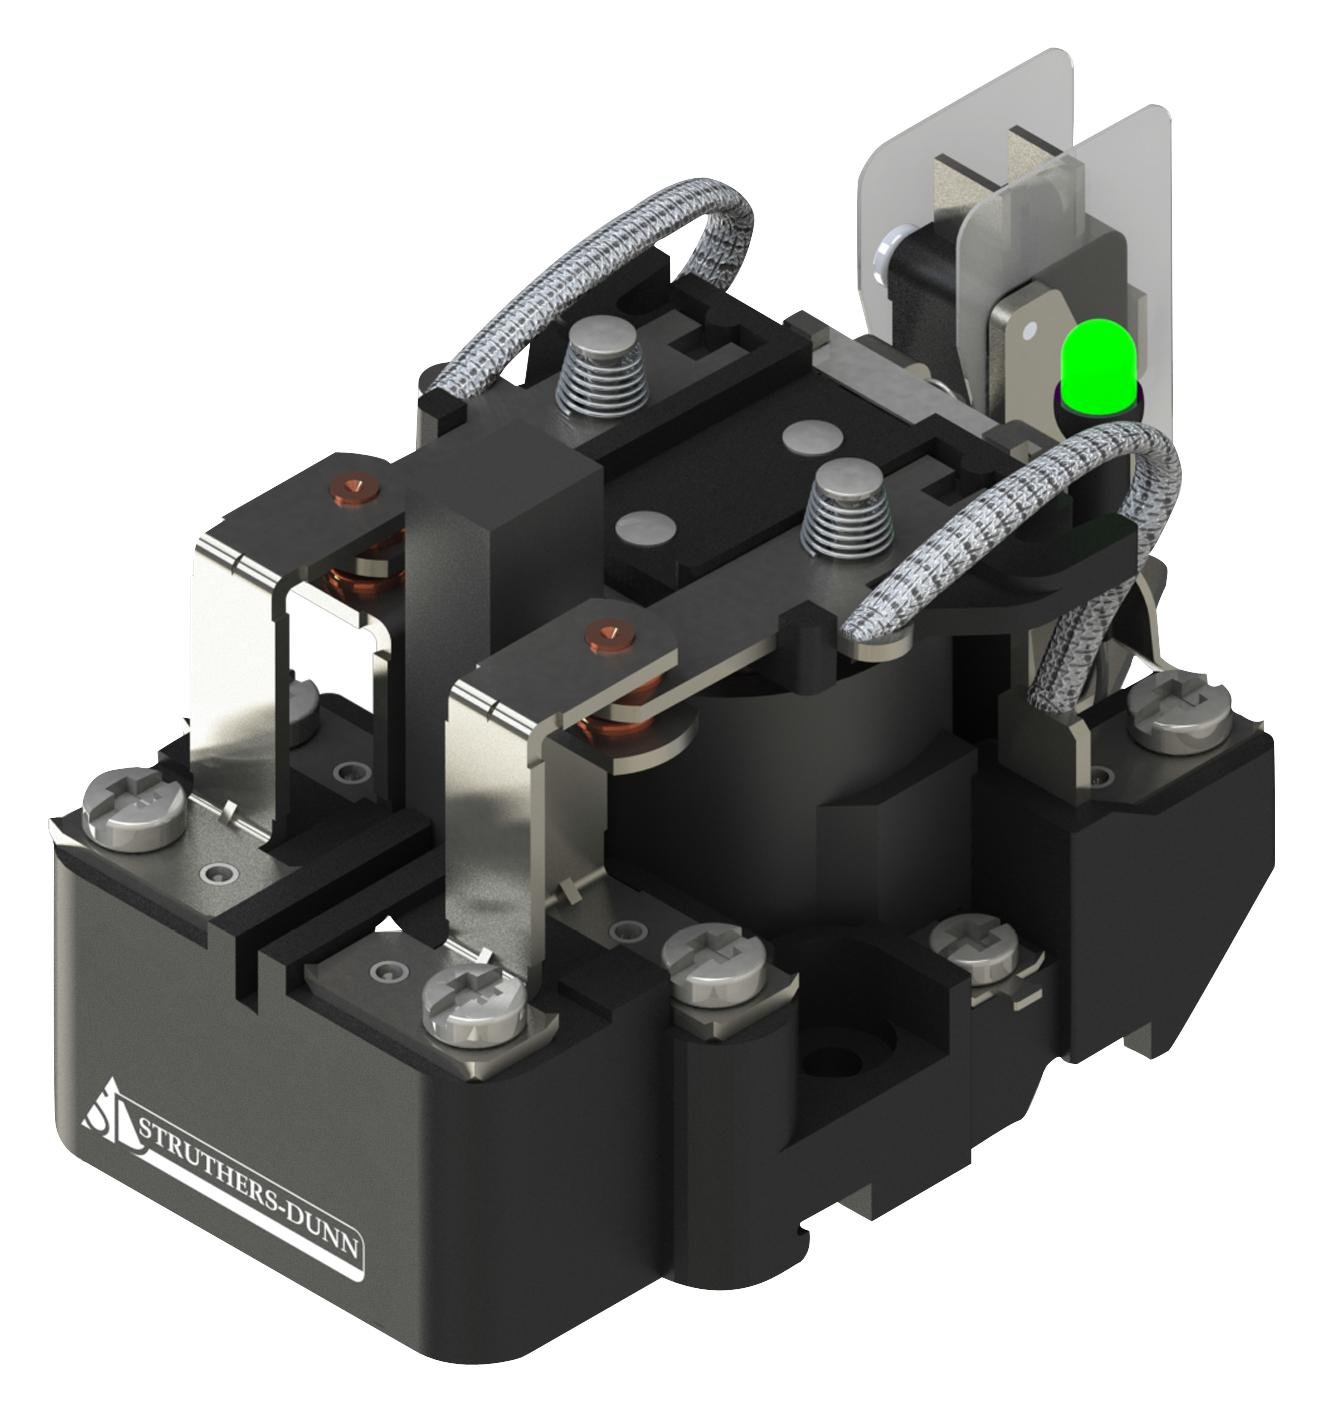 450XBX40-24VAC - Max 64% OFF Power Relay DPDT 24 VAC Sales of SALE items from new works DI 450 A Series 40